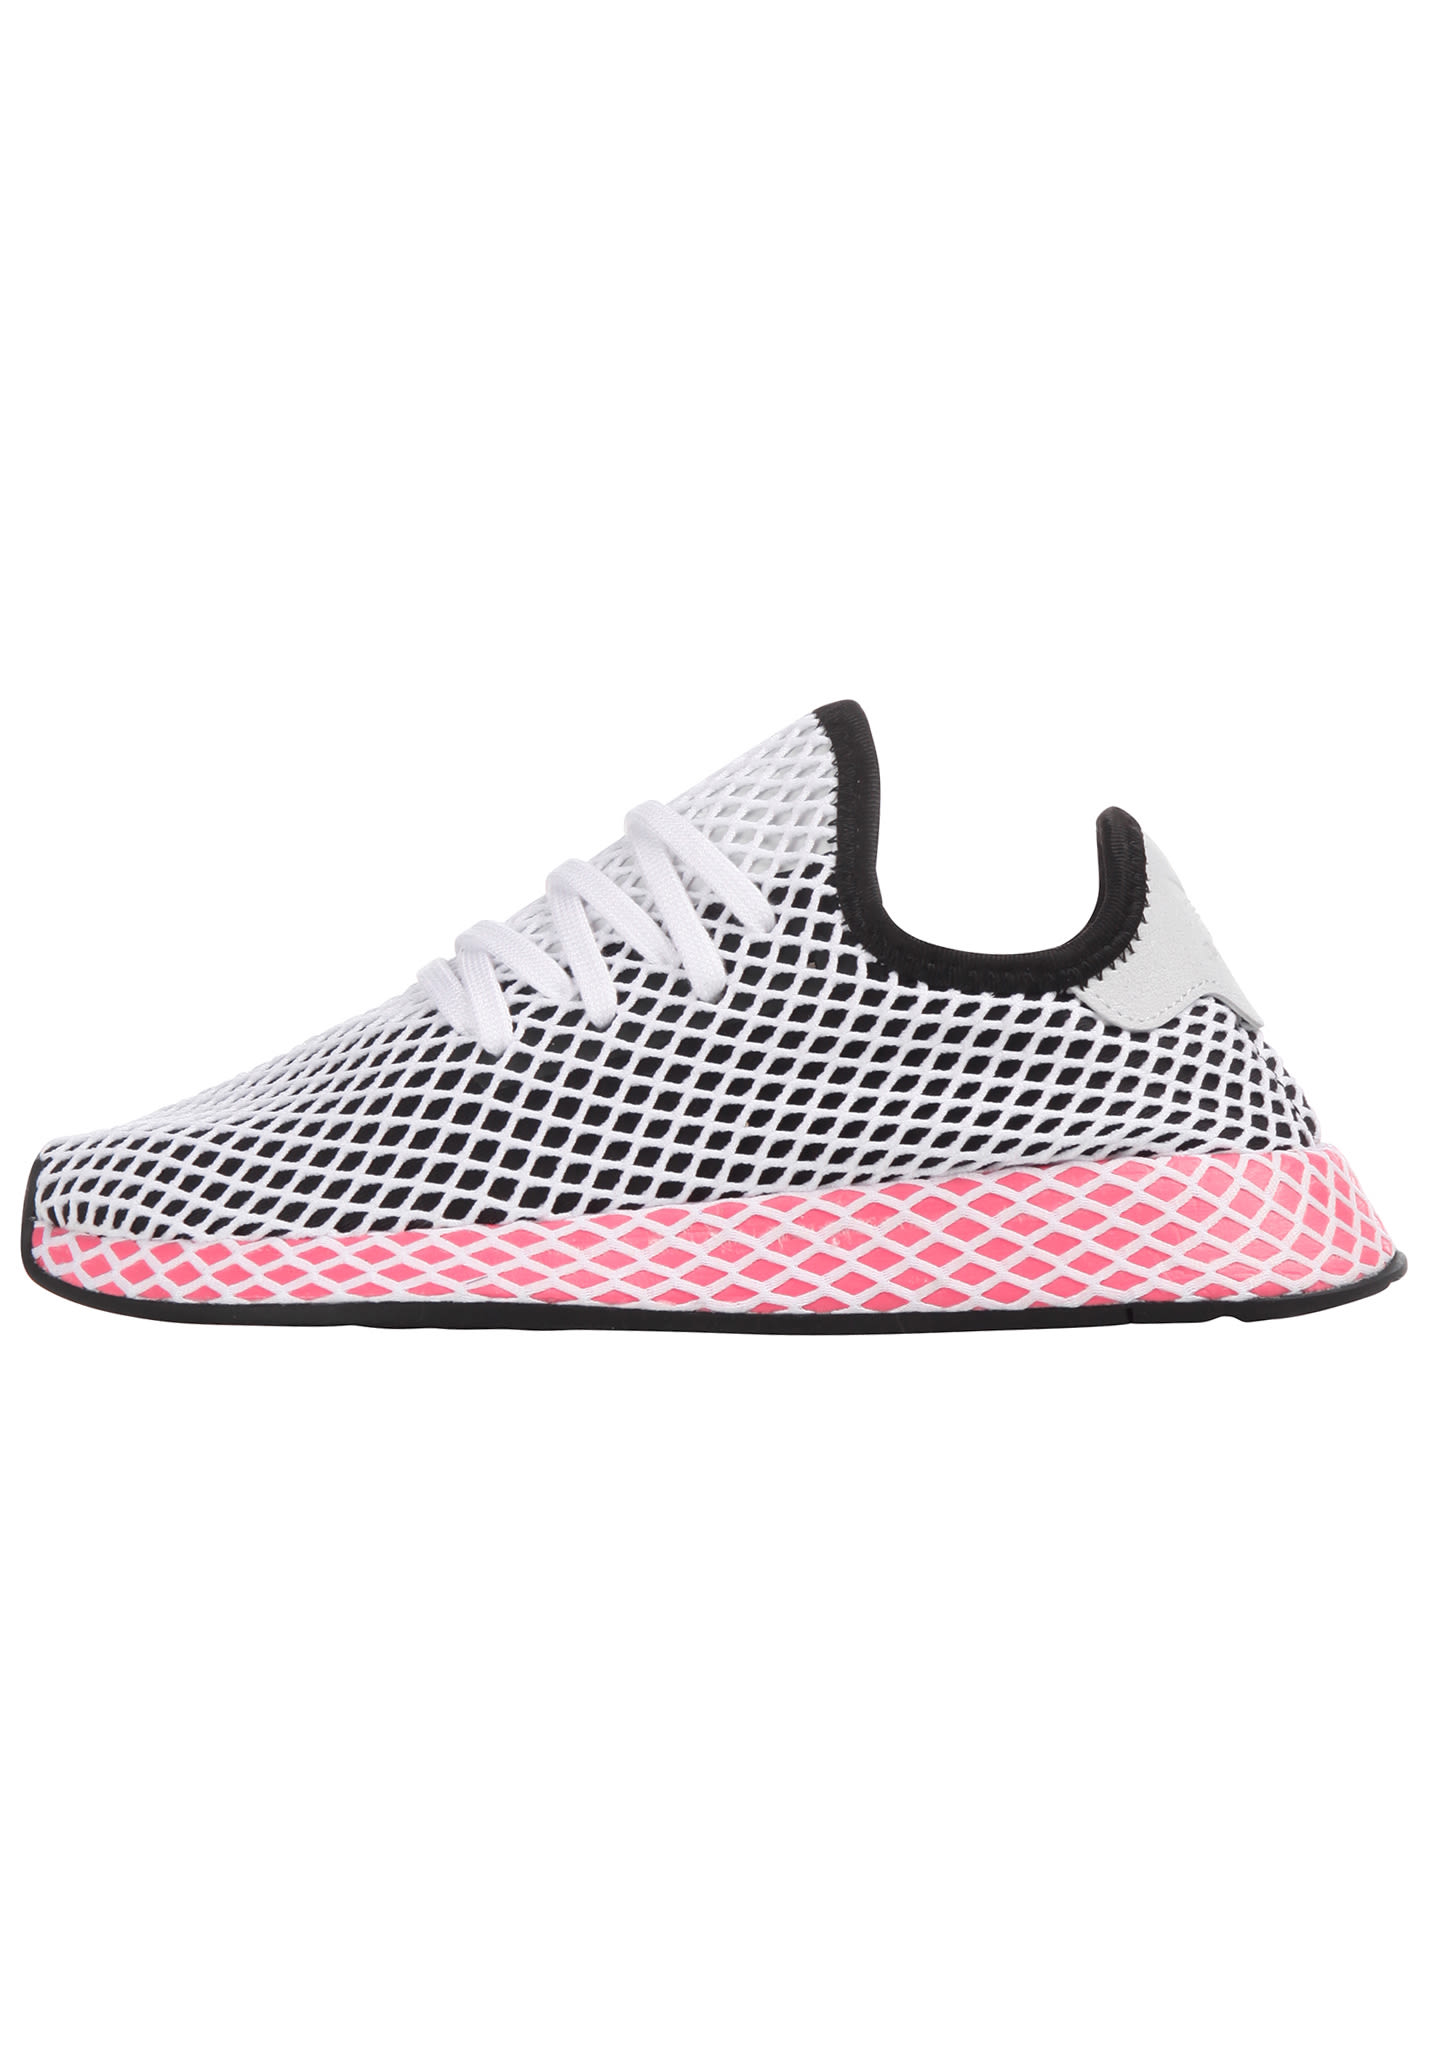 more photos a24d5 9cffb ADIDAS ORIGINALS Deerupt Runner - Sneakers for Women - Black